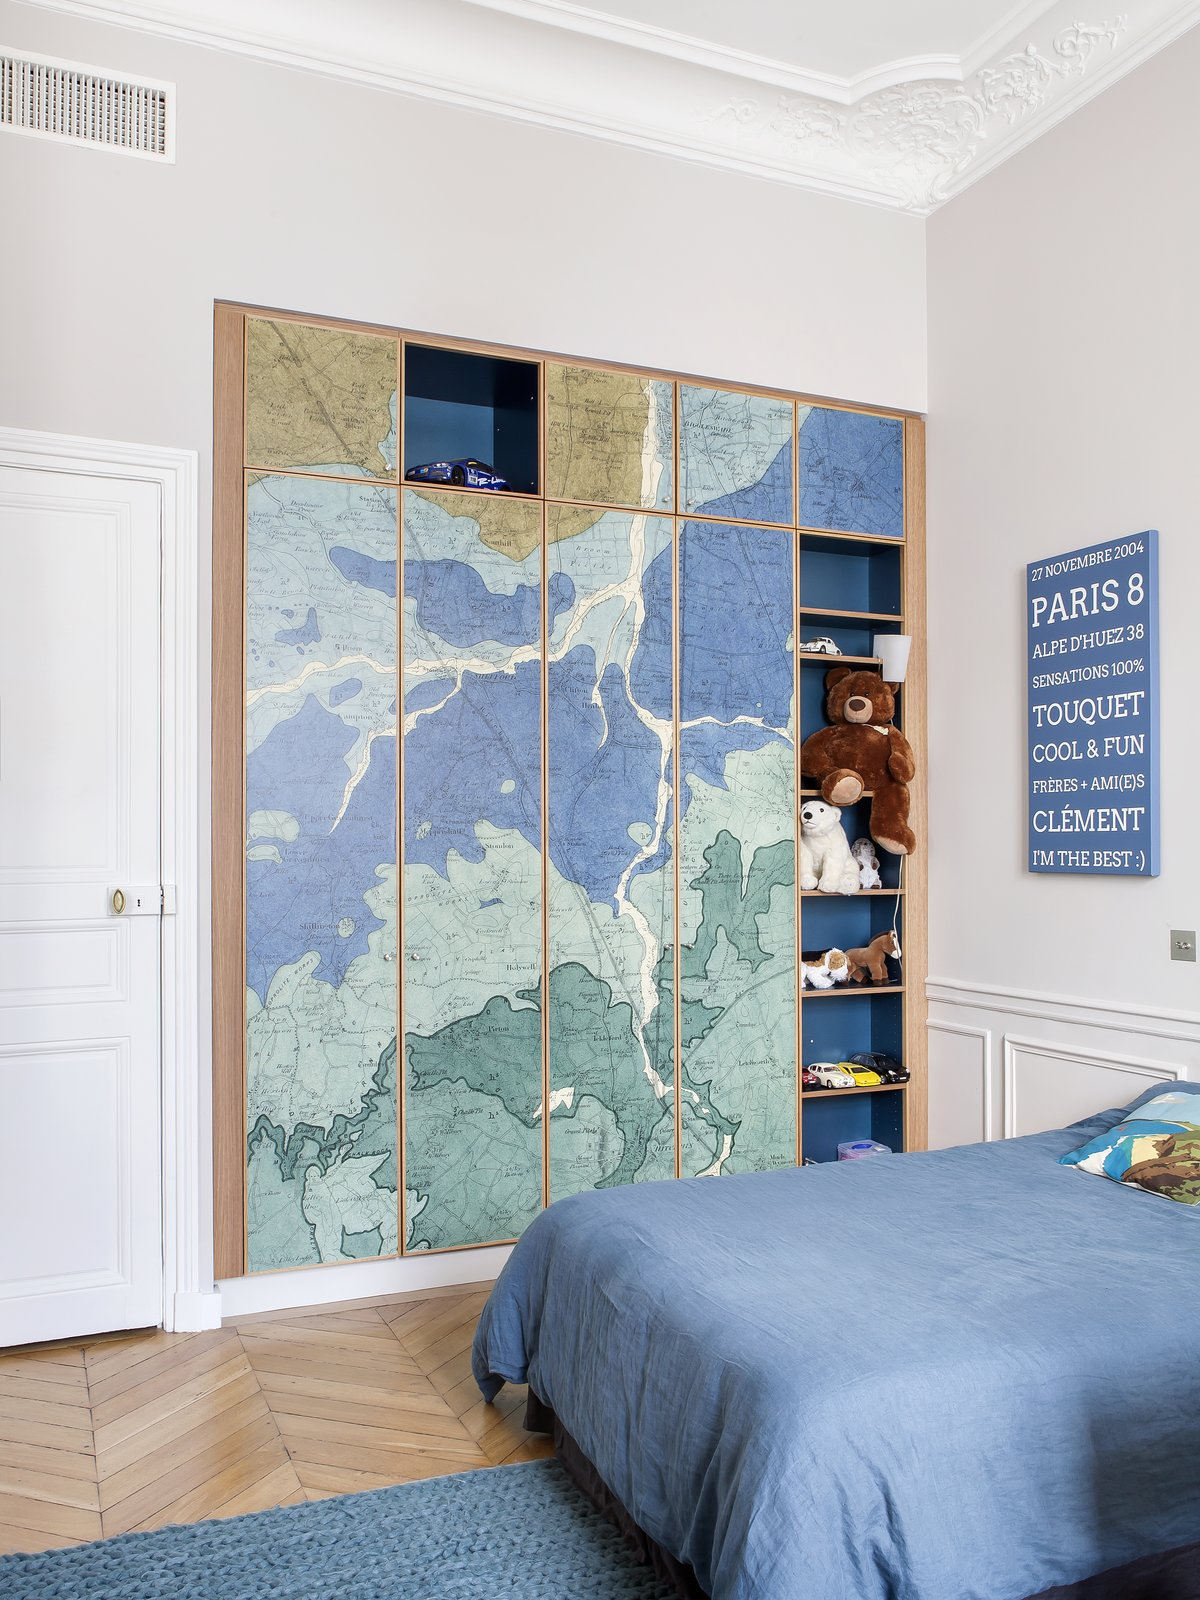 Kids Room, Bedroom Room Type, Storage, Medium Hardwood Floor, Rug Floor, and Bed Oh My Wall from Paris Wallpaper was fitted on wardrobe doors in one of the children's rooms.  Photo 12 of 13 in A Parisian Abode Is Reborn With a Fresh, Unexpected Color Palette